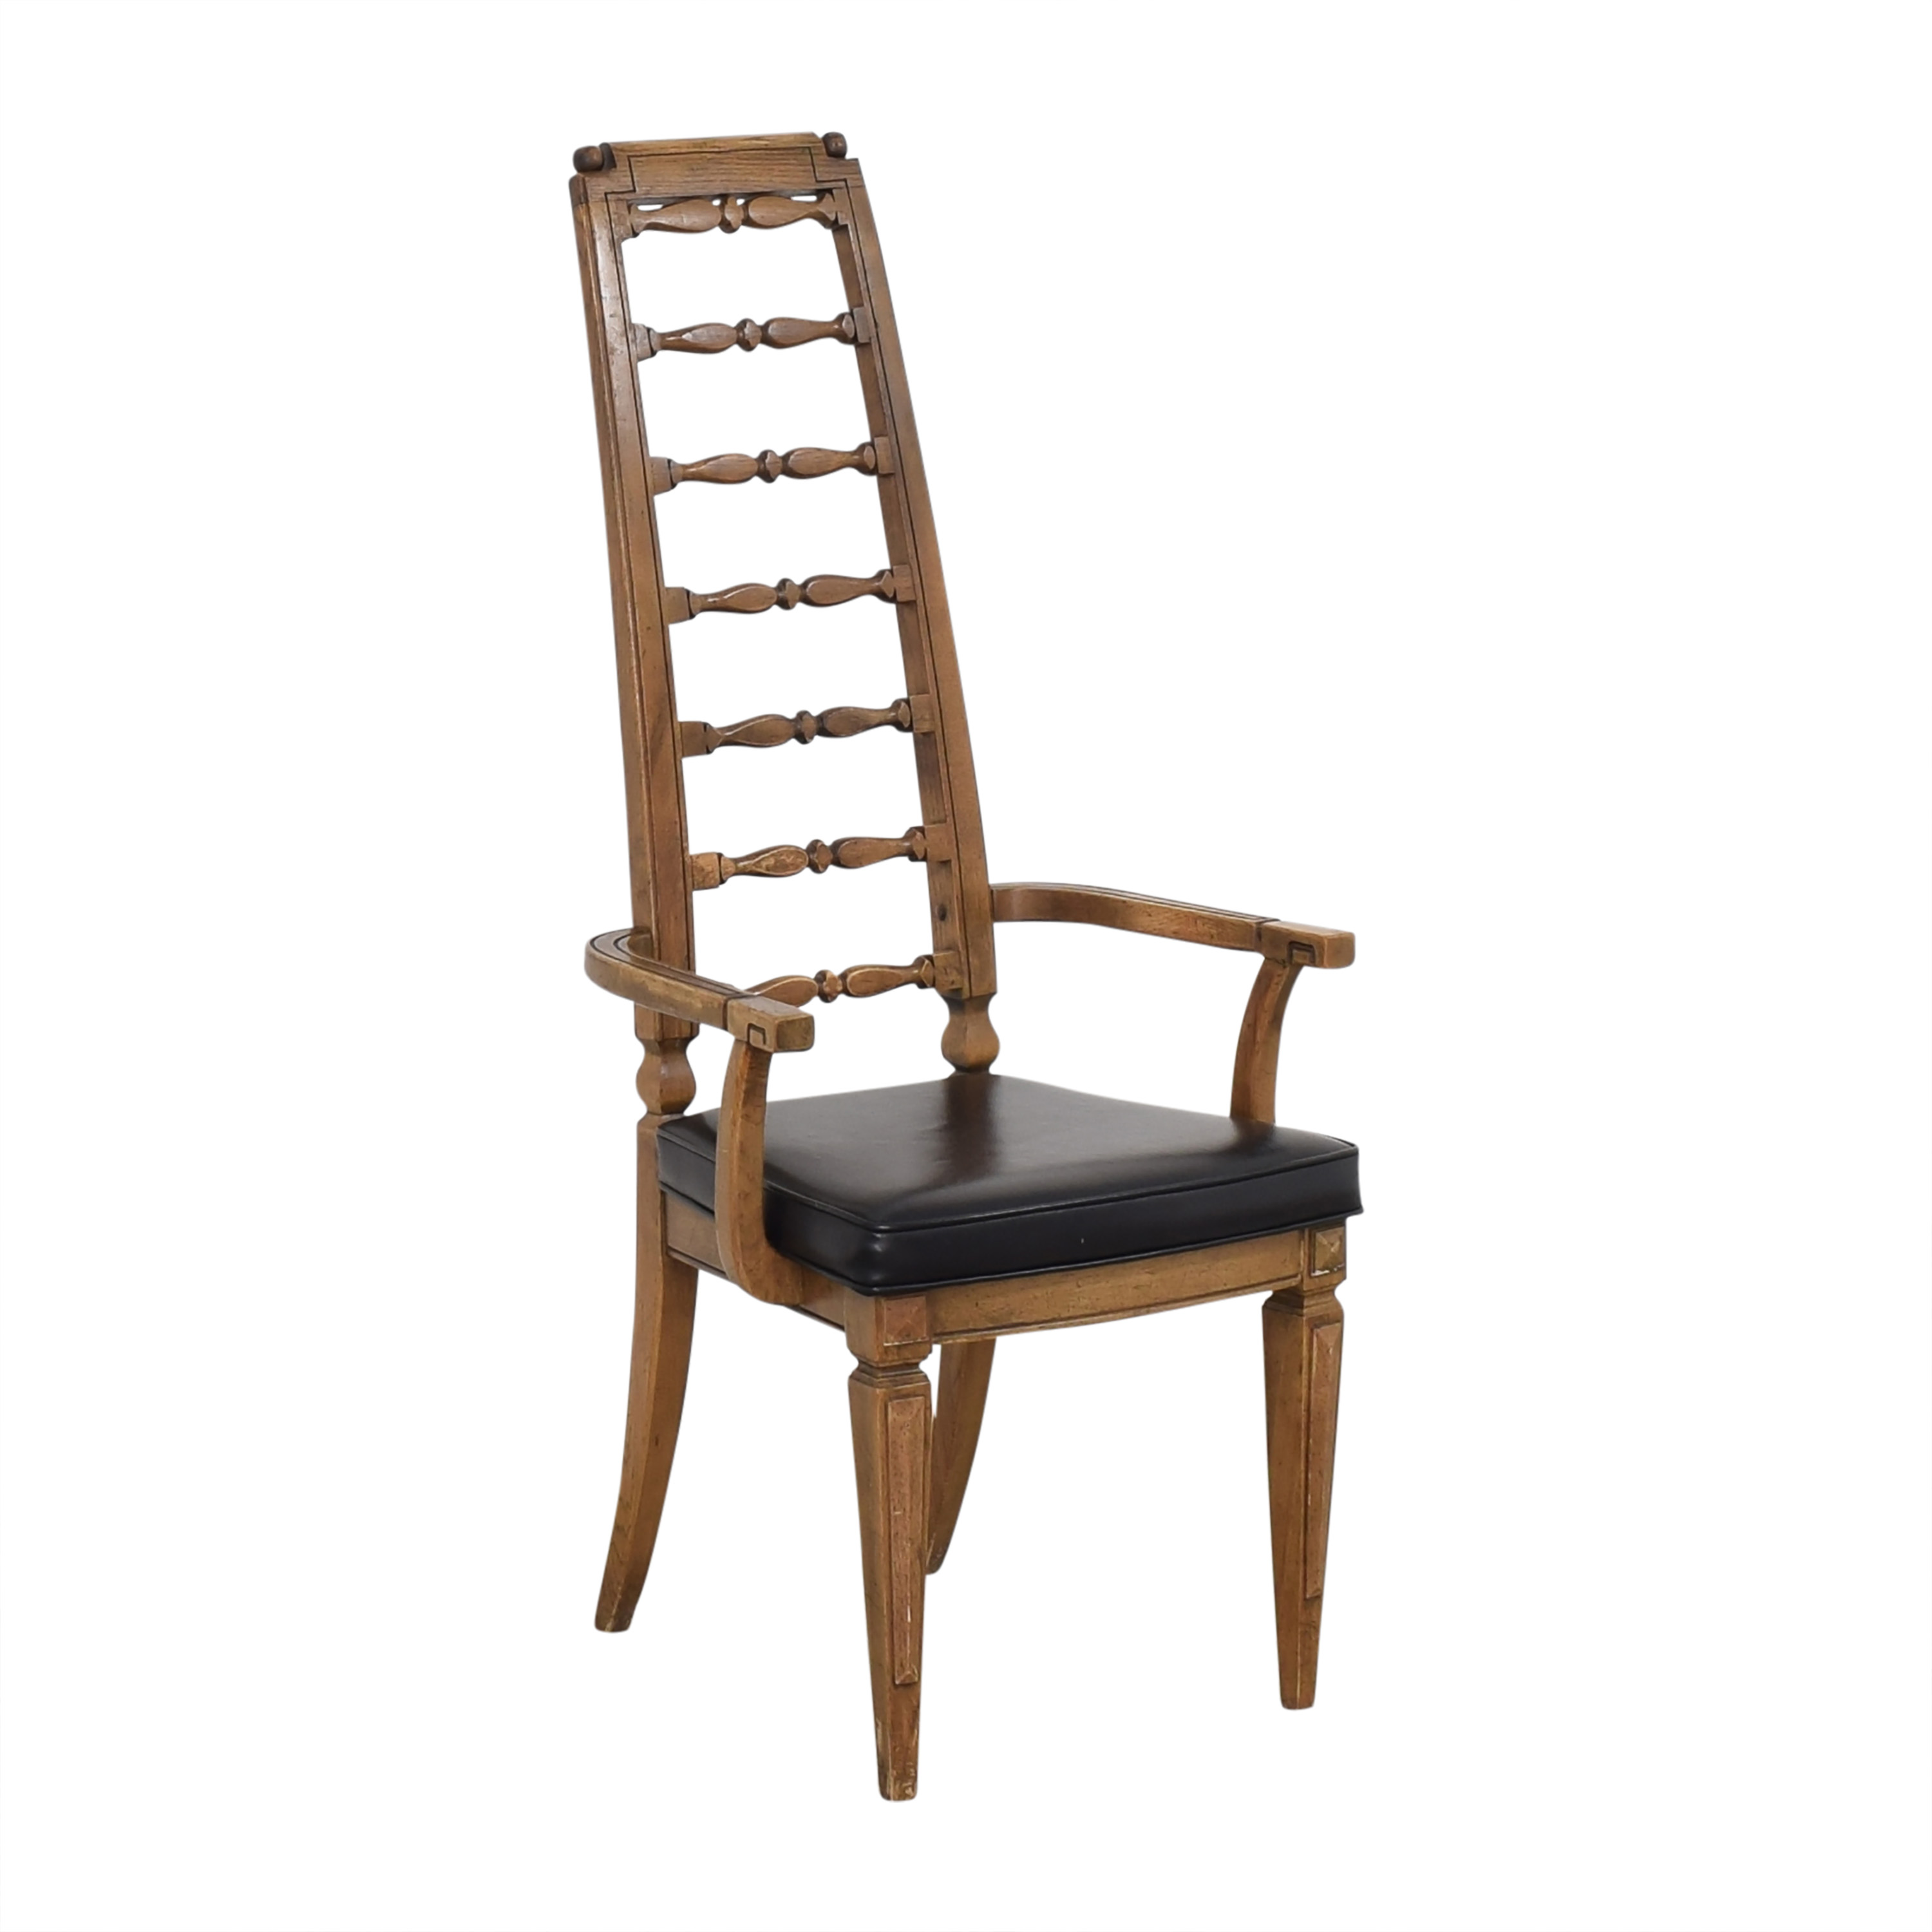 Thomasville Thomasville Tall Ladder Back Dining Arm Chair price